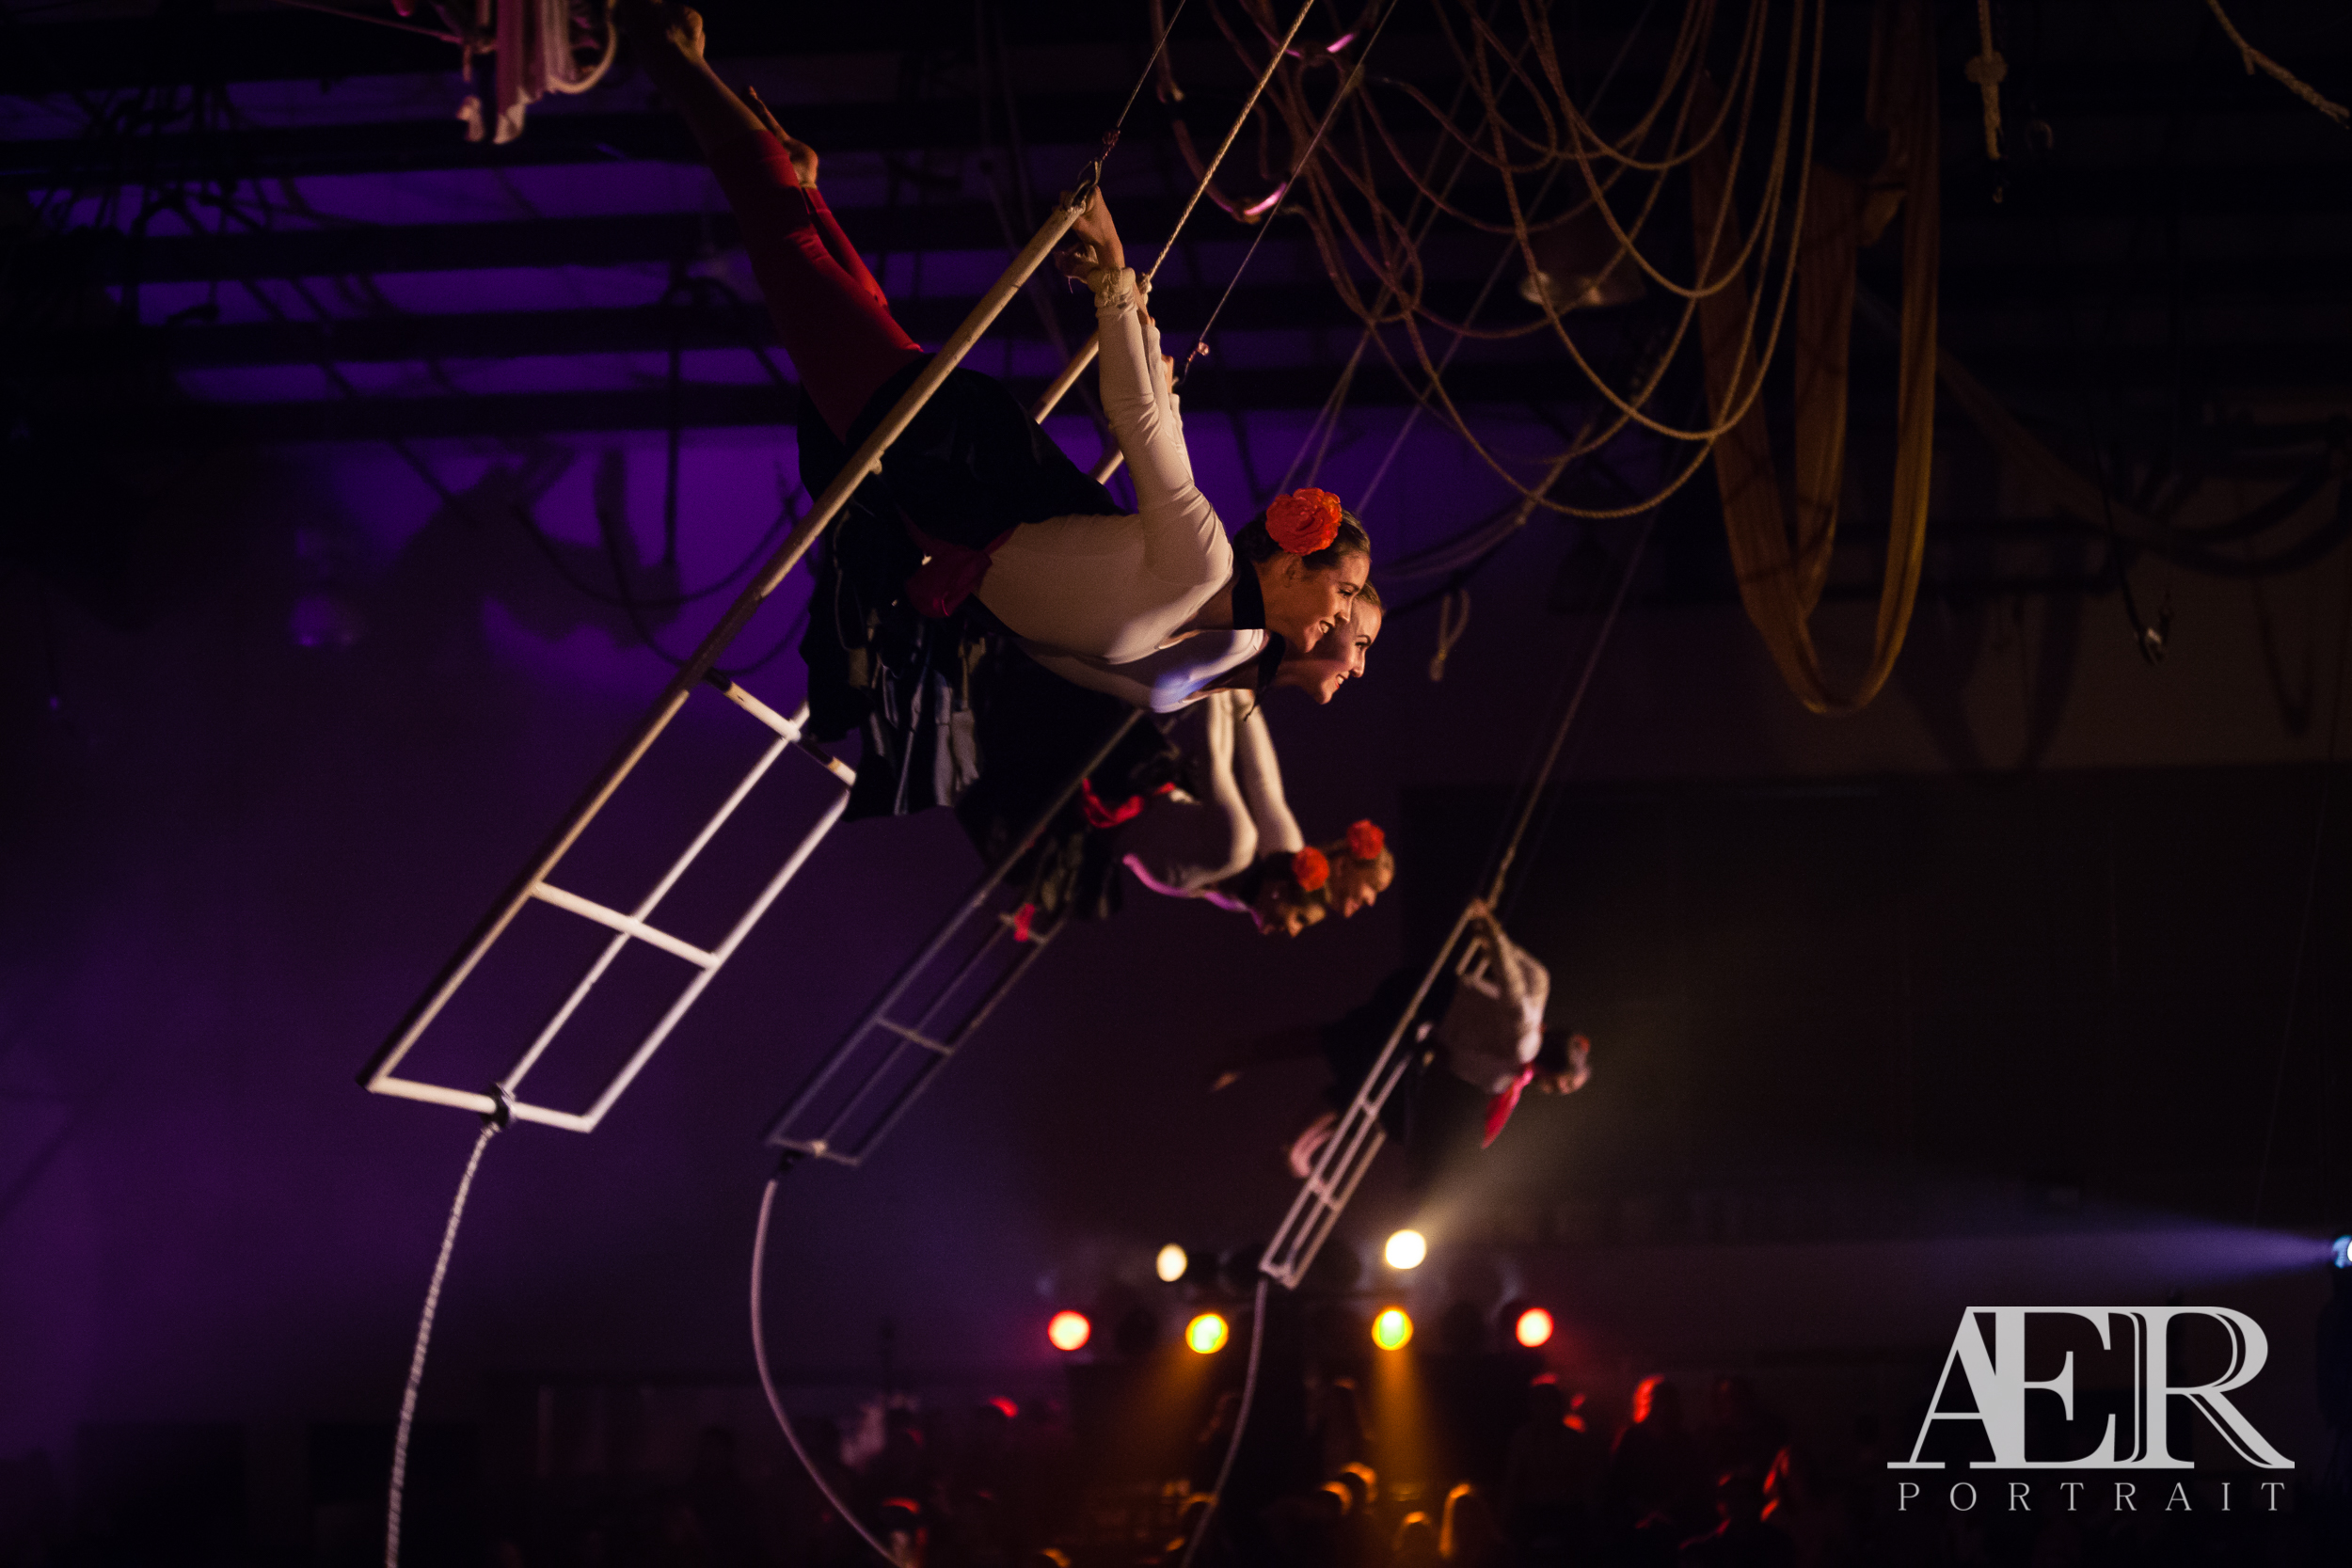 Louisville Performing Arts Photography - Turners Circus - AER Portrait 20